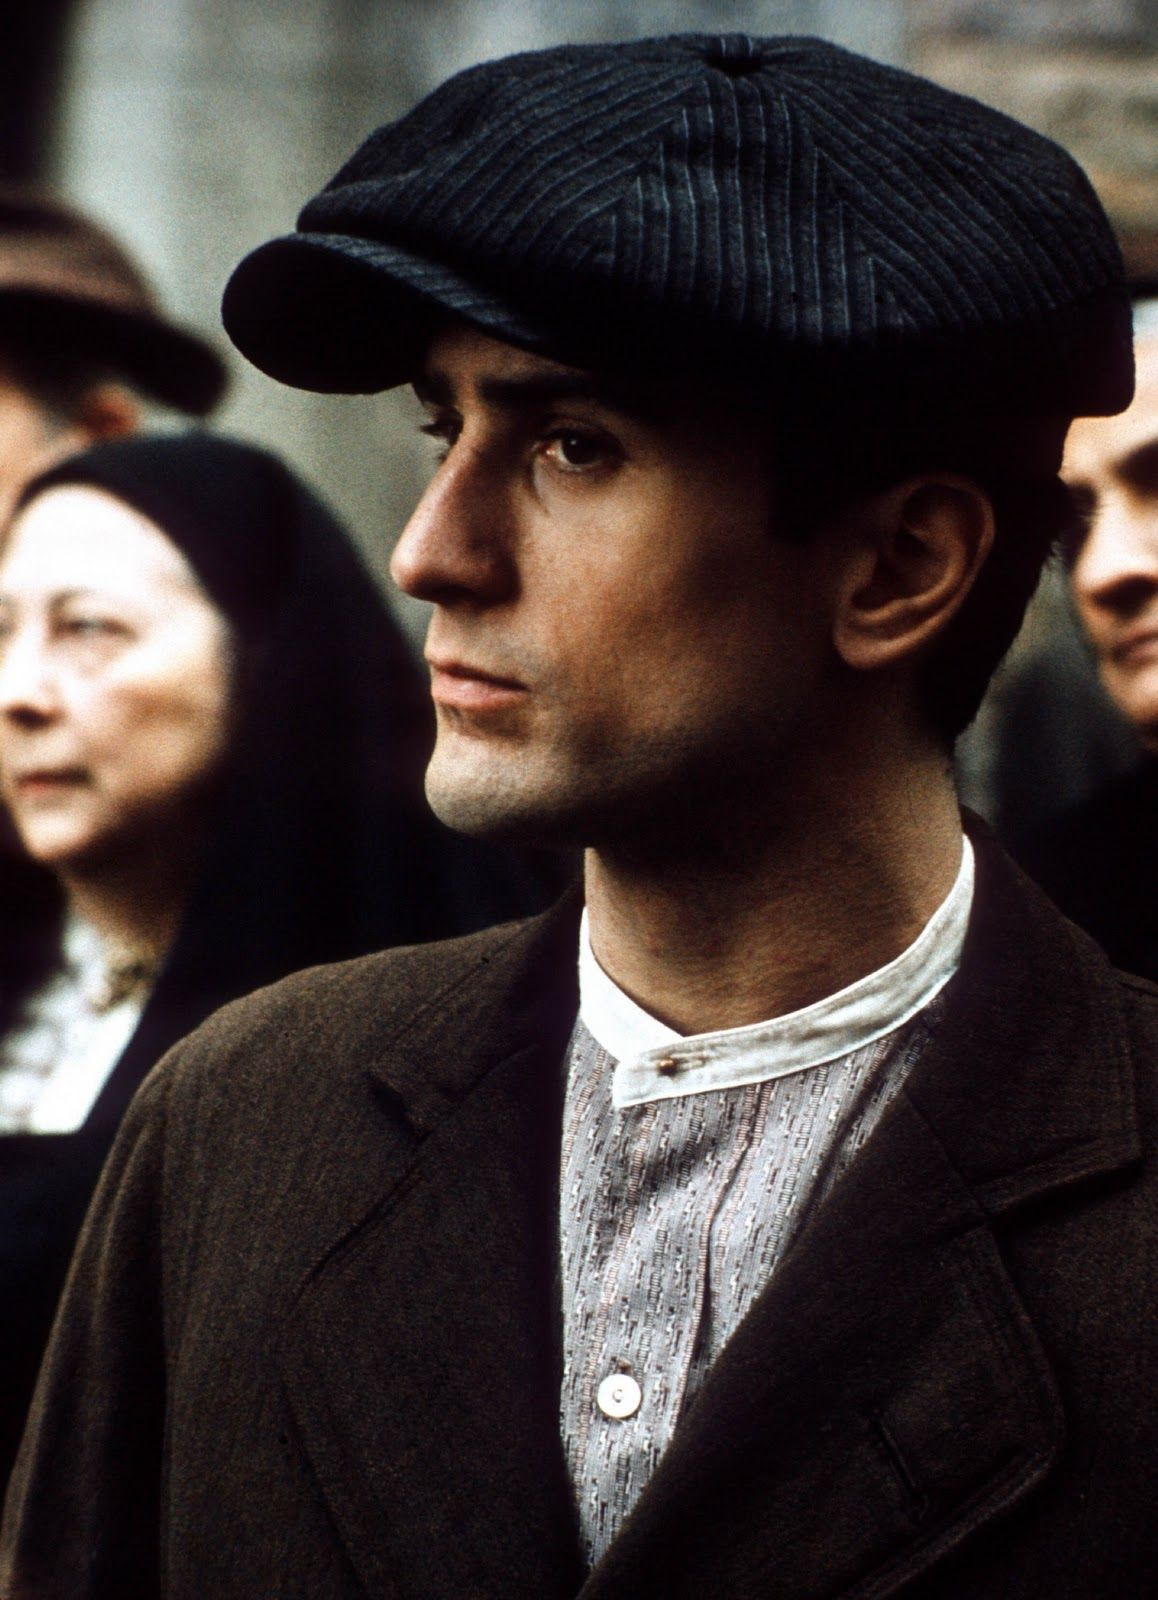 Robert De Niro The Godfather Part 2 Robert De Niro Il